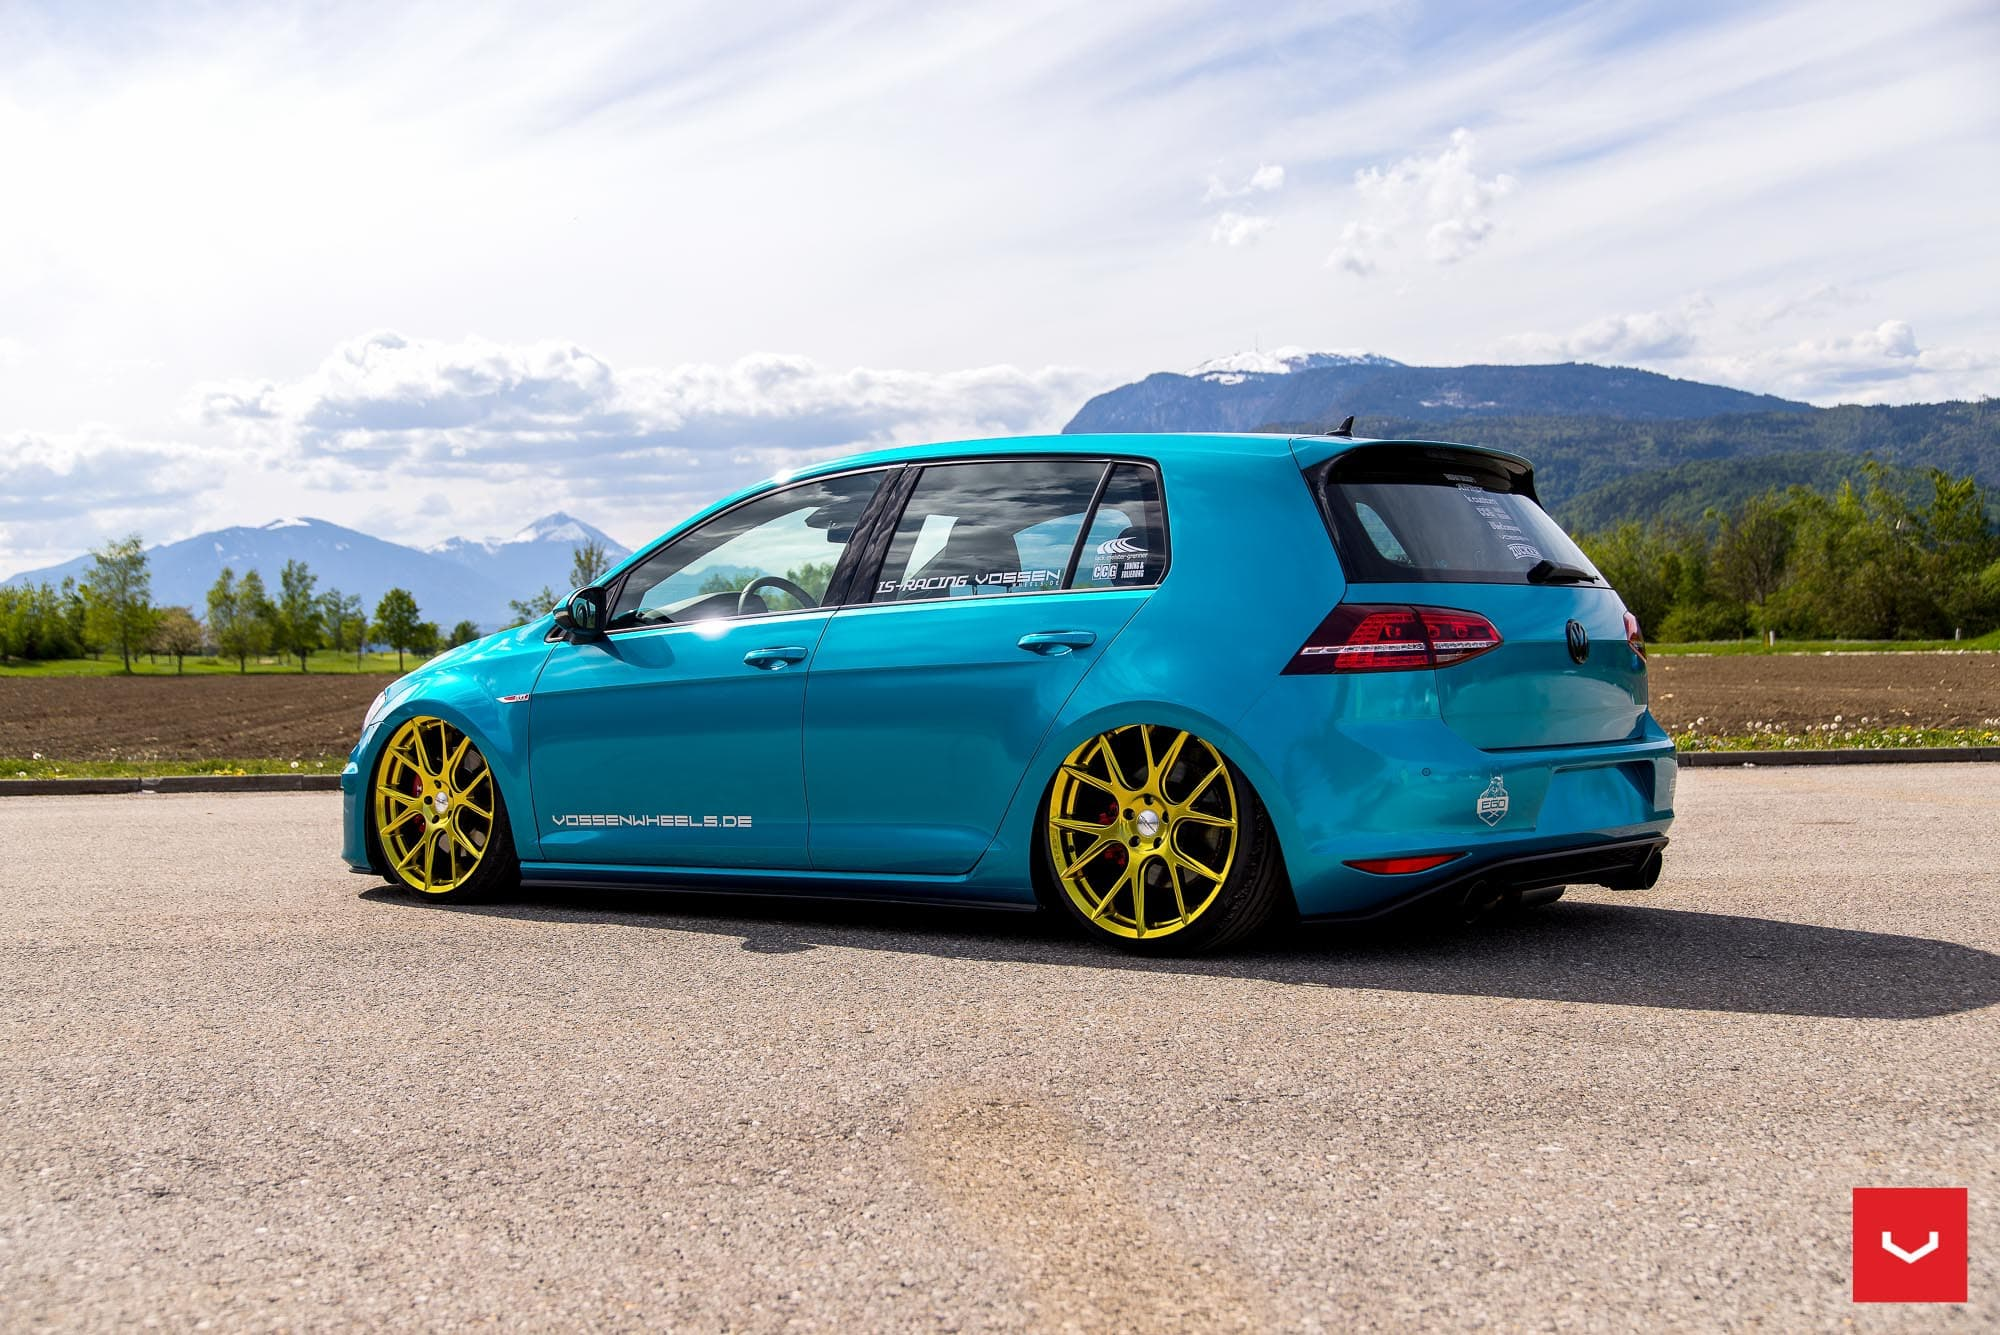 Best 26+ GTI Wallpaper on HipWallpaper | Golf GTI Wallpaper, VW GTI ...